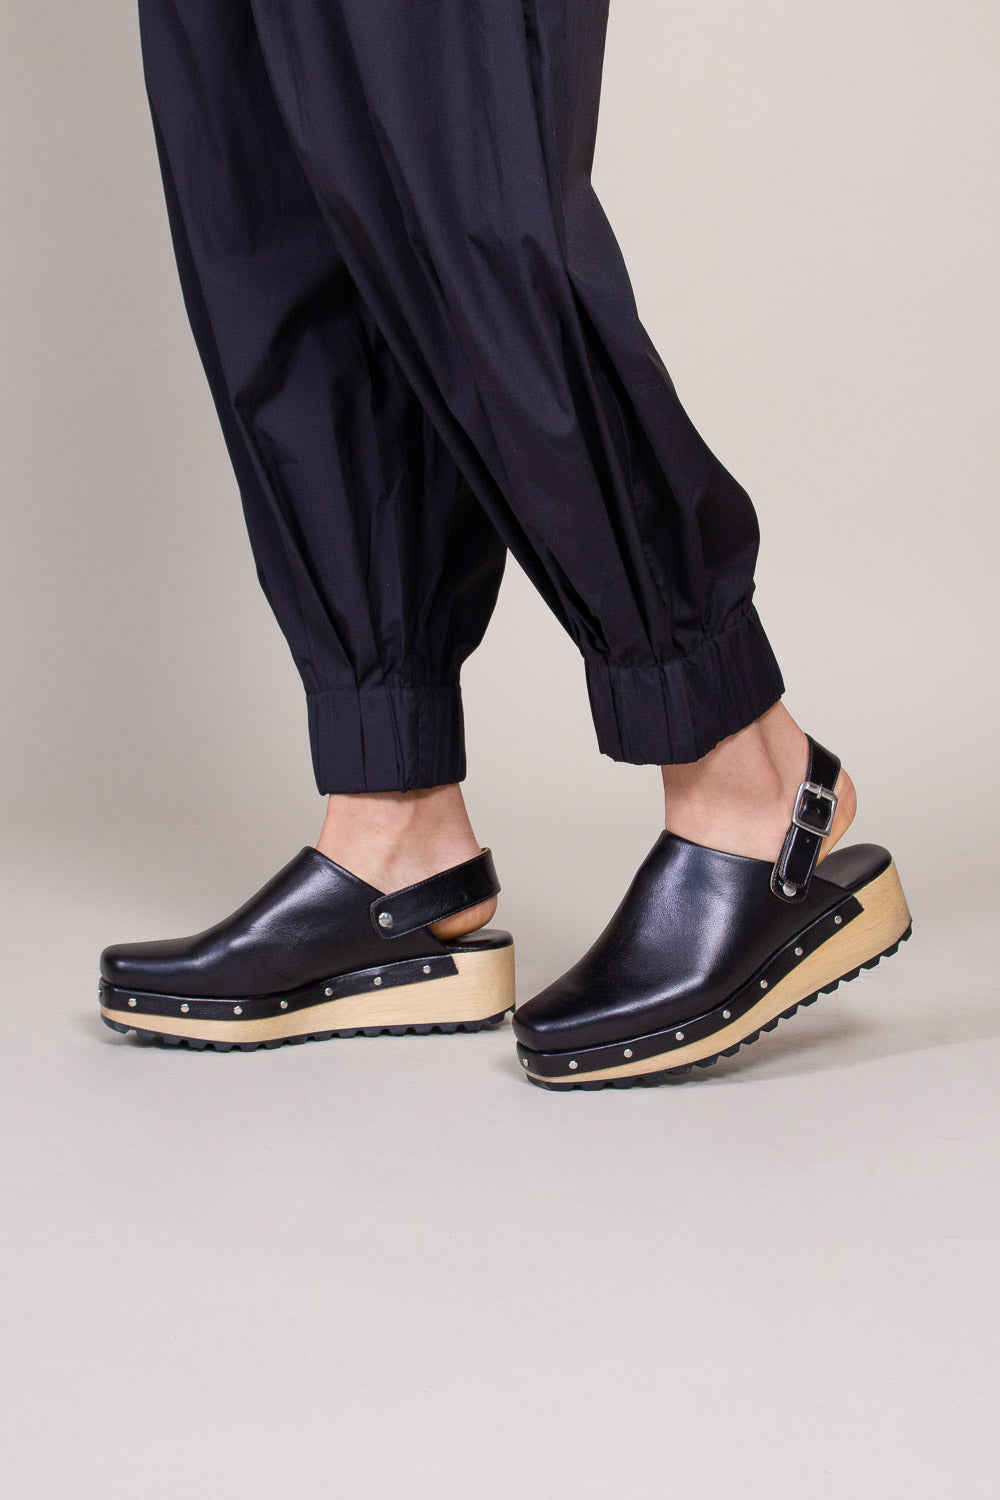 Beam Clog in Black